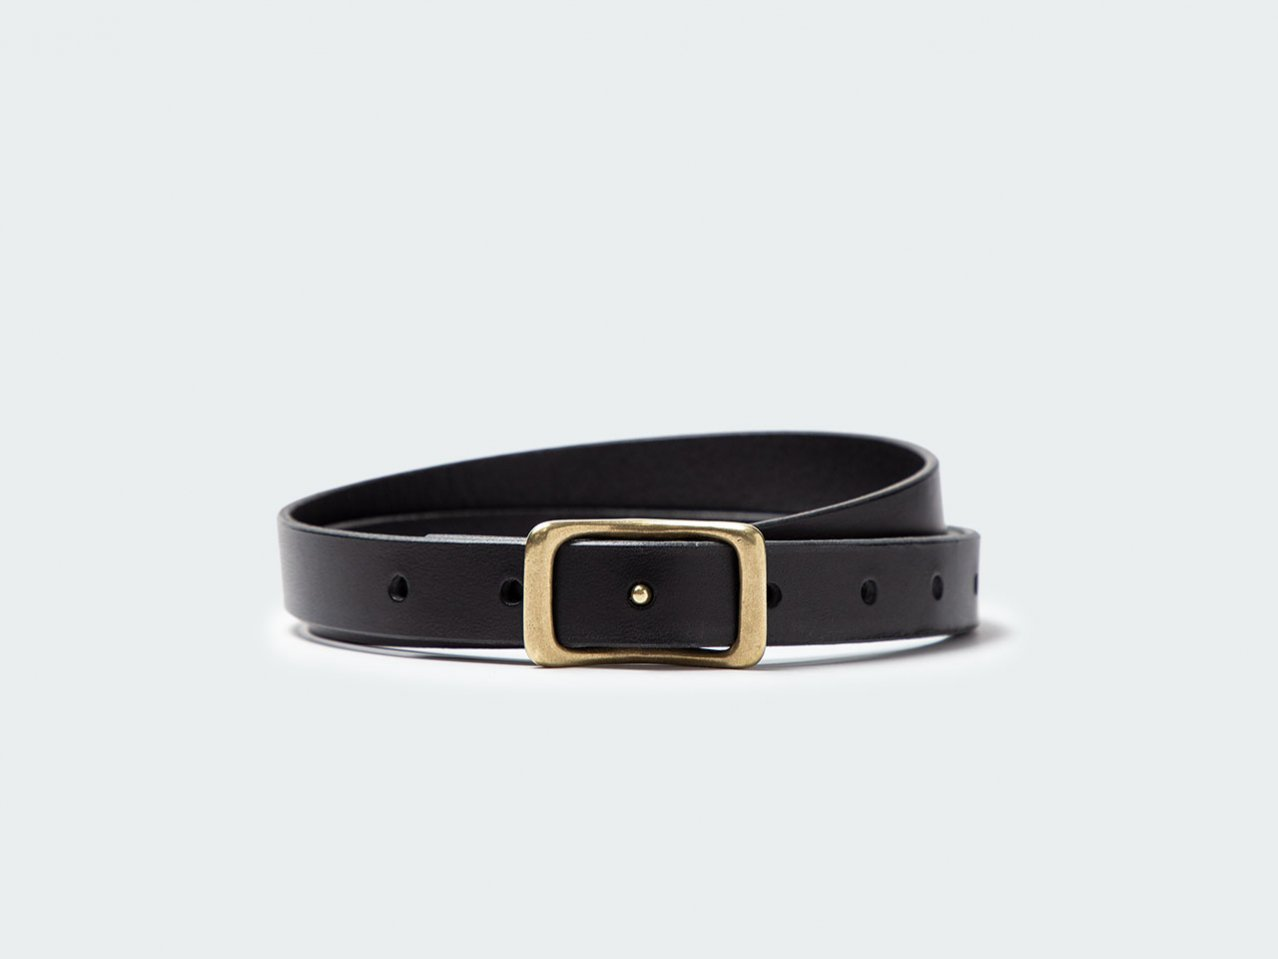 NARROW NAVEL BELT 22 / BLACK